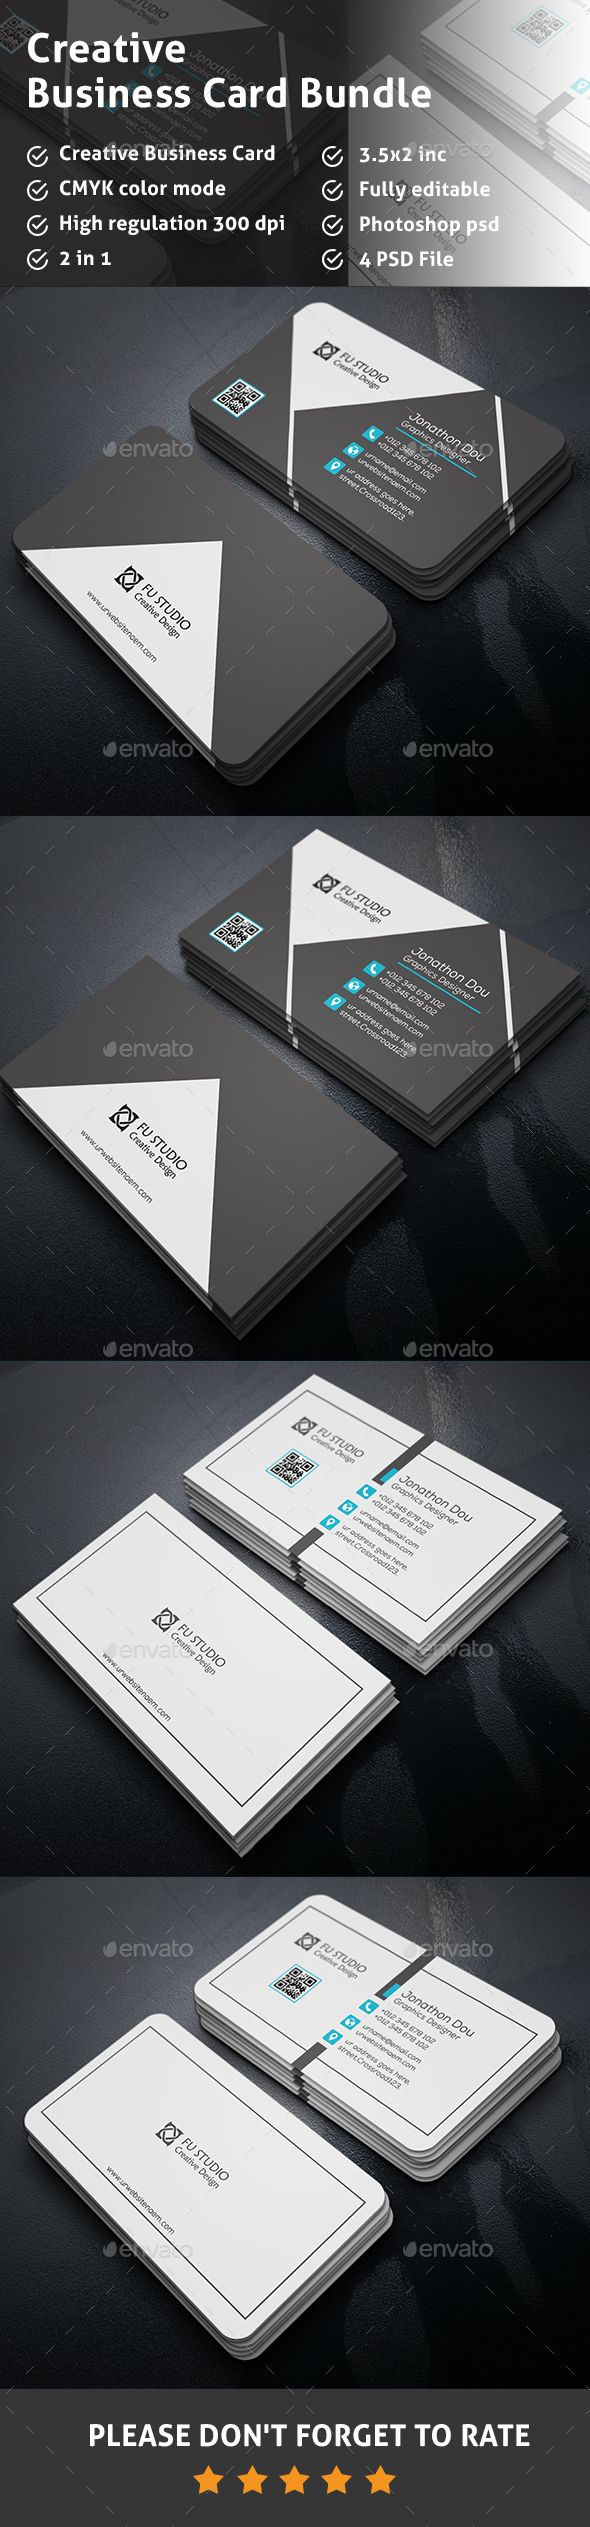 Business Card Bundle Template PSD #visitcard #design Download: http://graphicriver.net/item/business-card-bundle/13338060?ref=ksioks